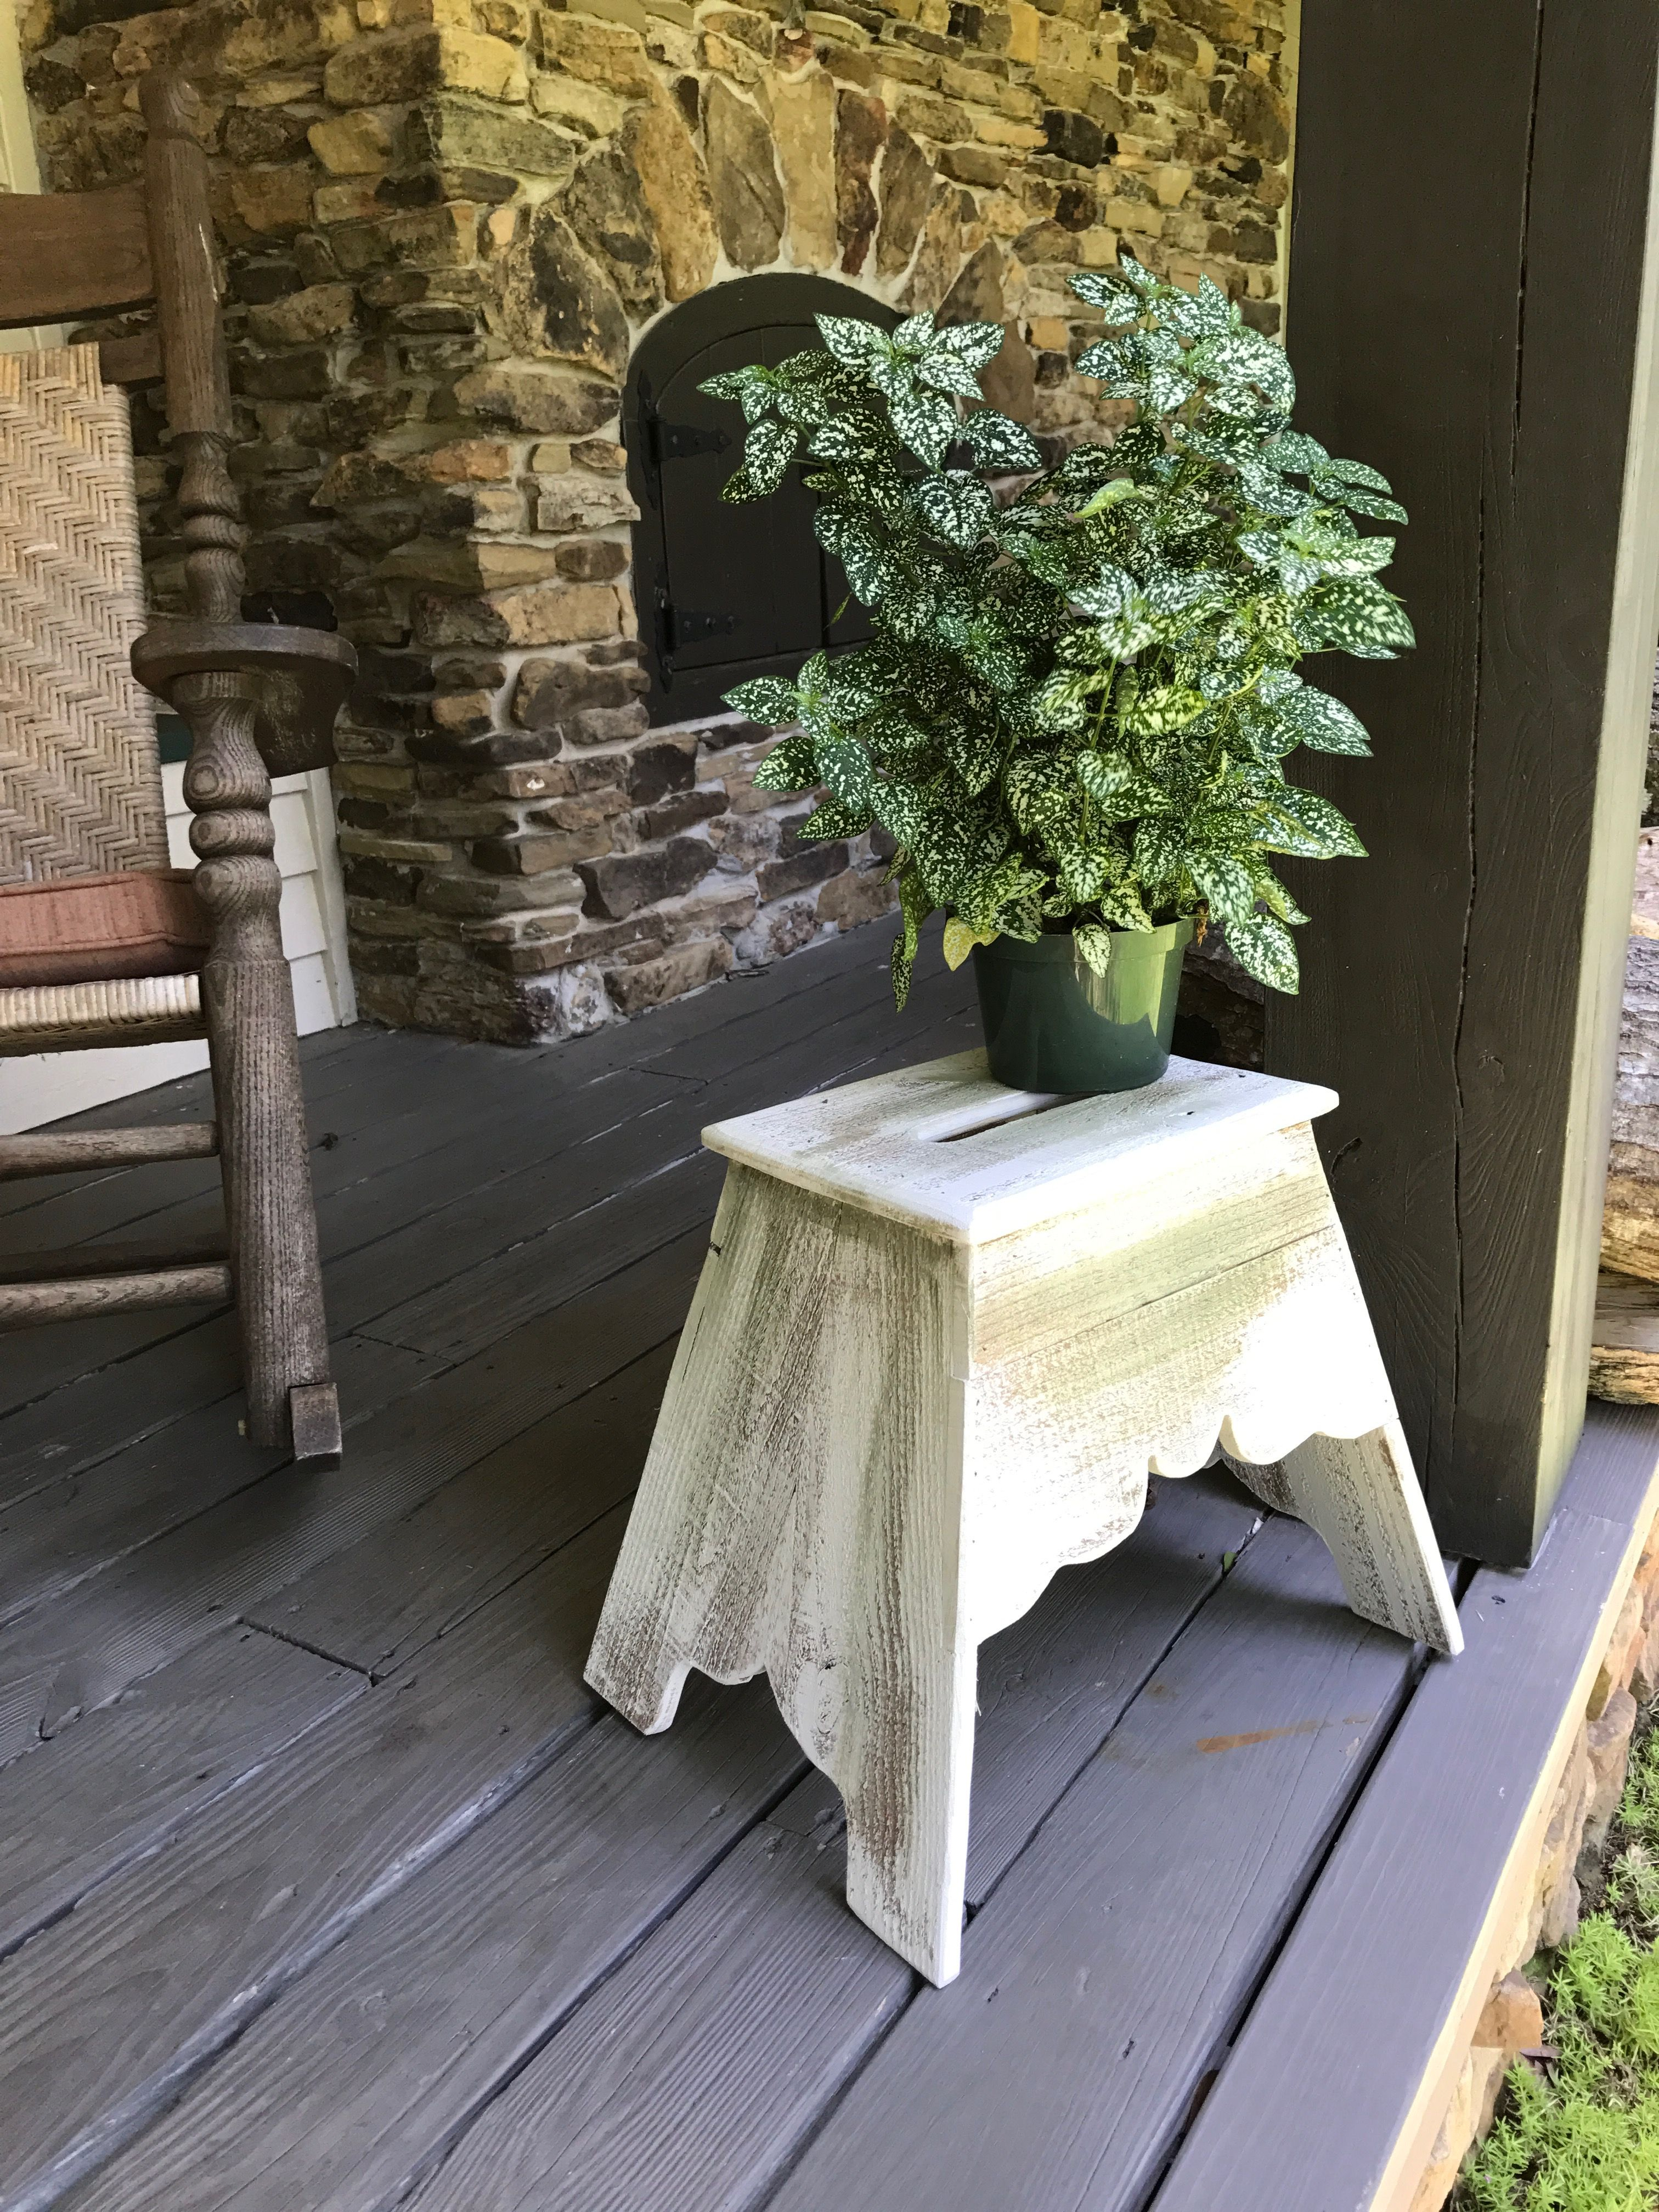 Reproduction of a Louisiana Antique Stool, made by Woodwing Art's Mitch Kilgore.